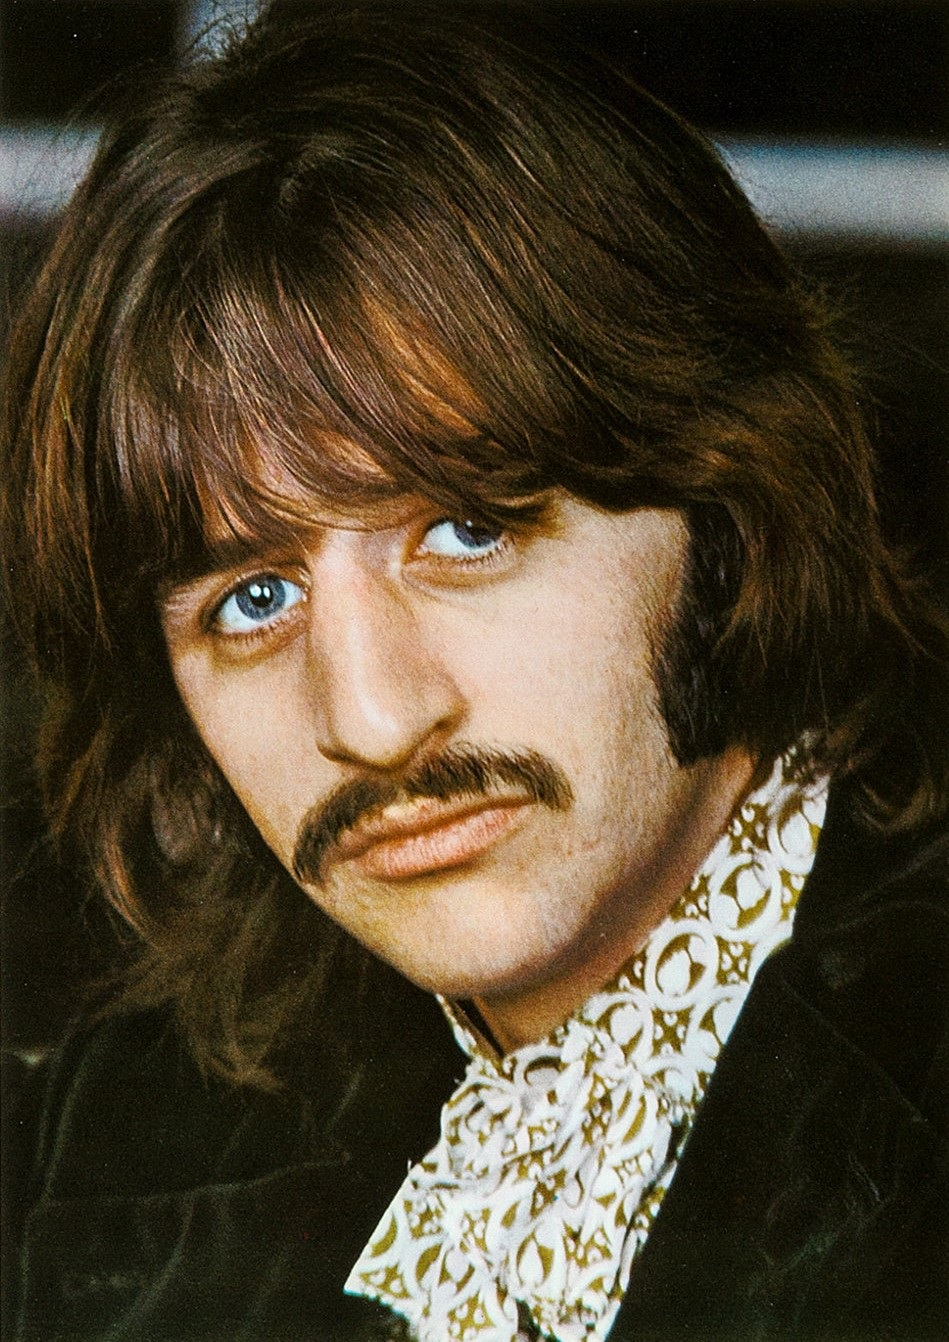 The Beatles Ringo Starr Apple Records Promotional Image